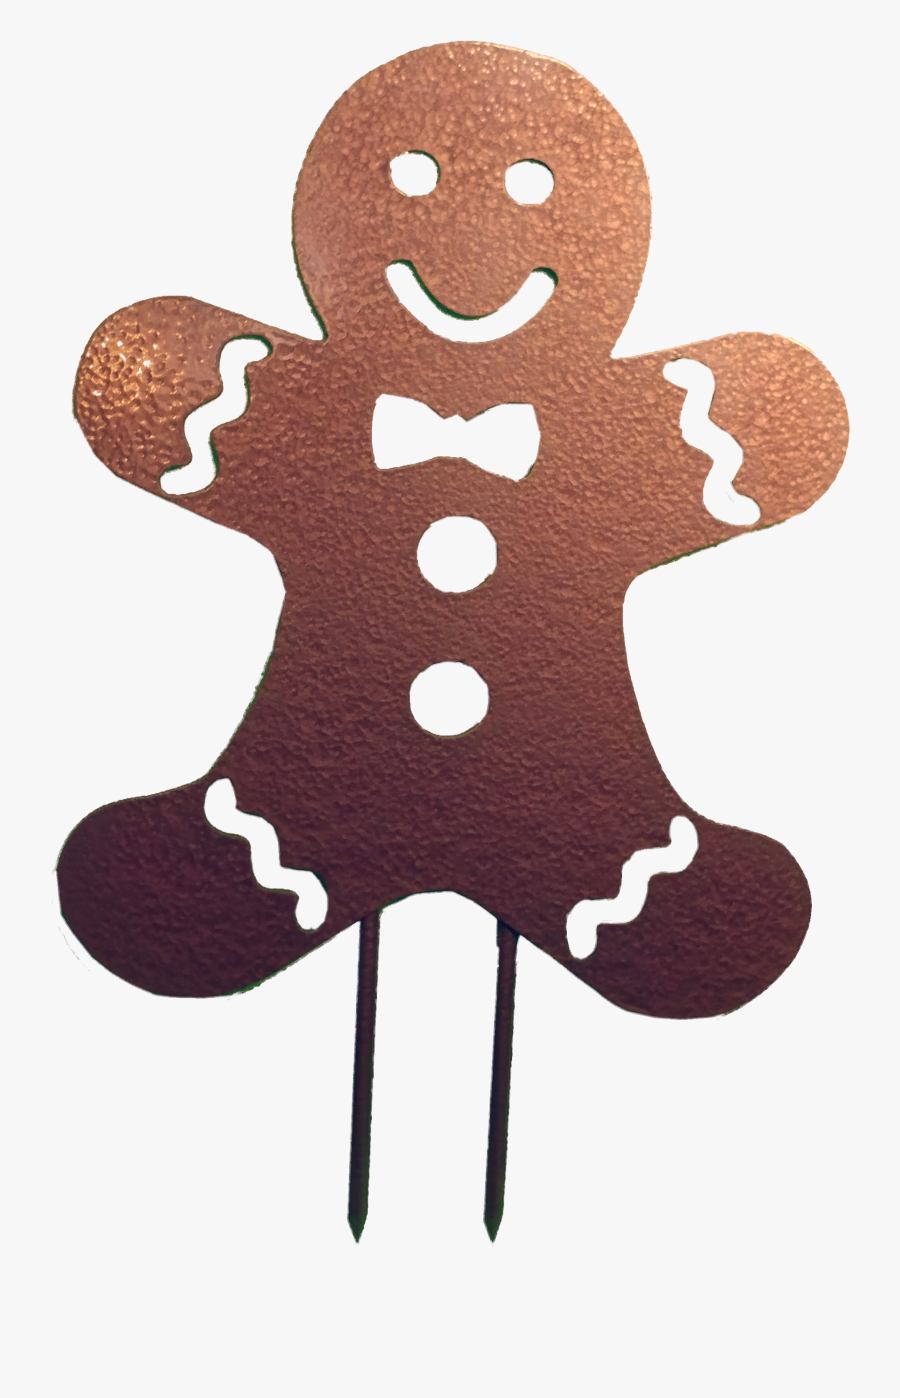 Gingerbread Man Biscuits Scalable Vector Graphics - Gingerbread Man With Santa Hat, Transparent Clipart